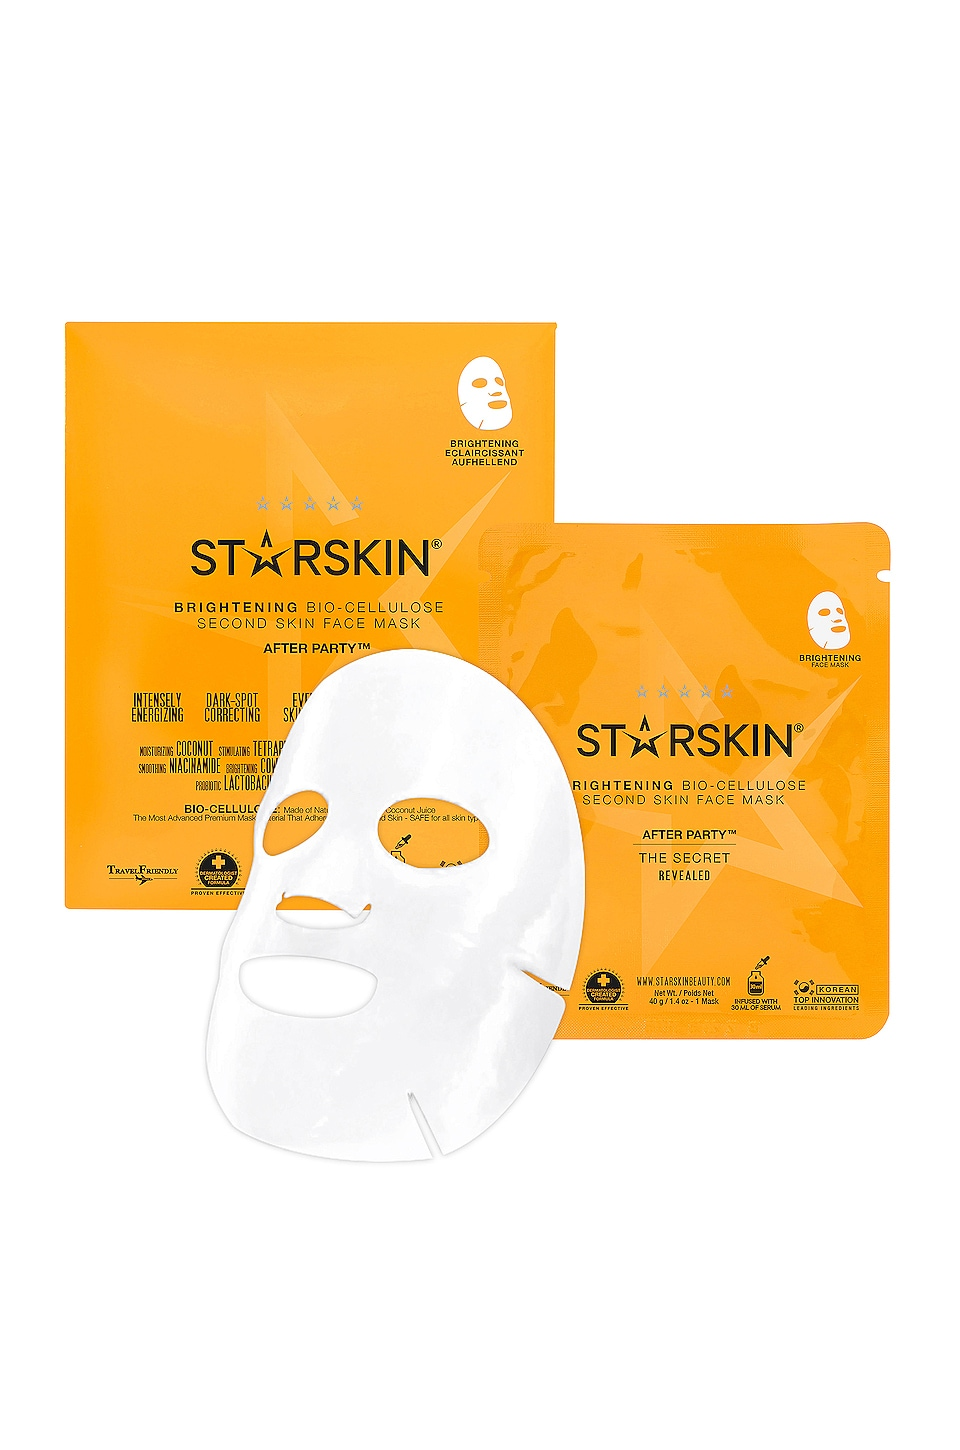 STARSKIN MASCARA FACIAL COCONUT BIO CELLULOSE SECOND SKIN AFTER PARTY FACE MASK